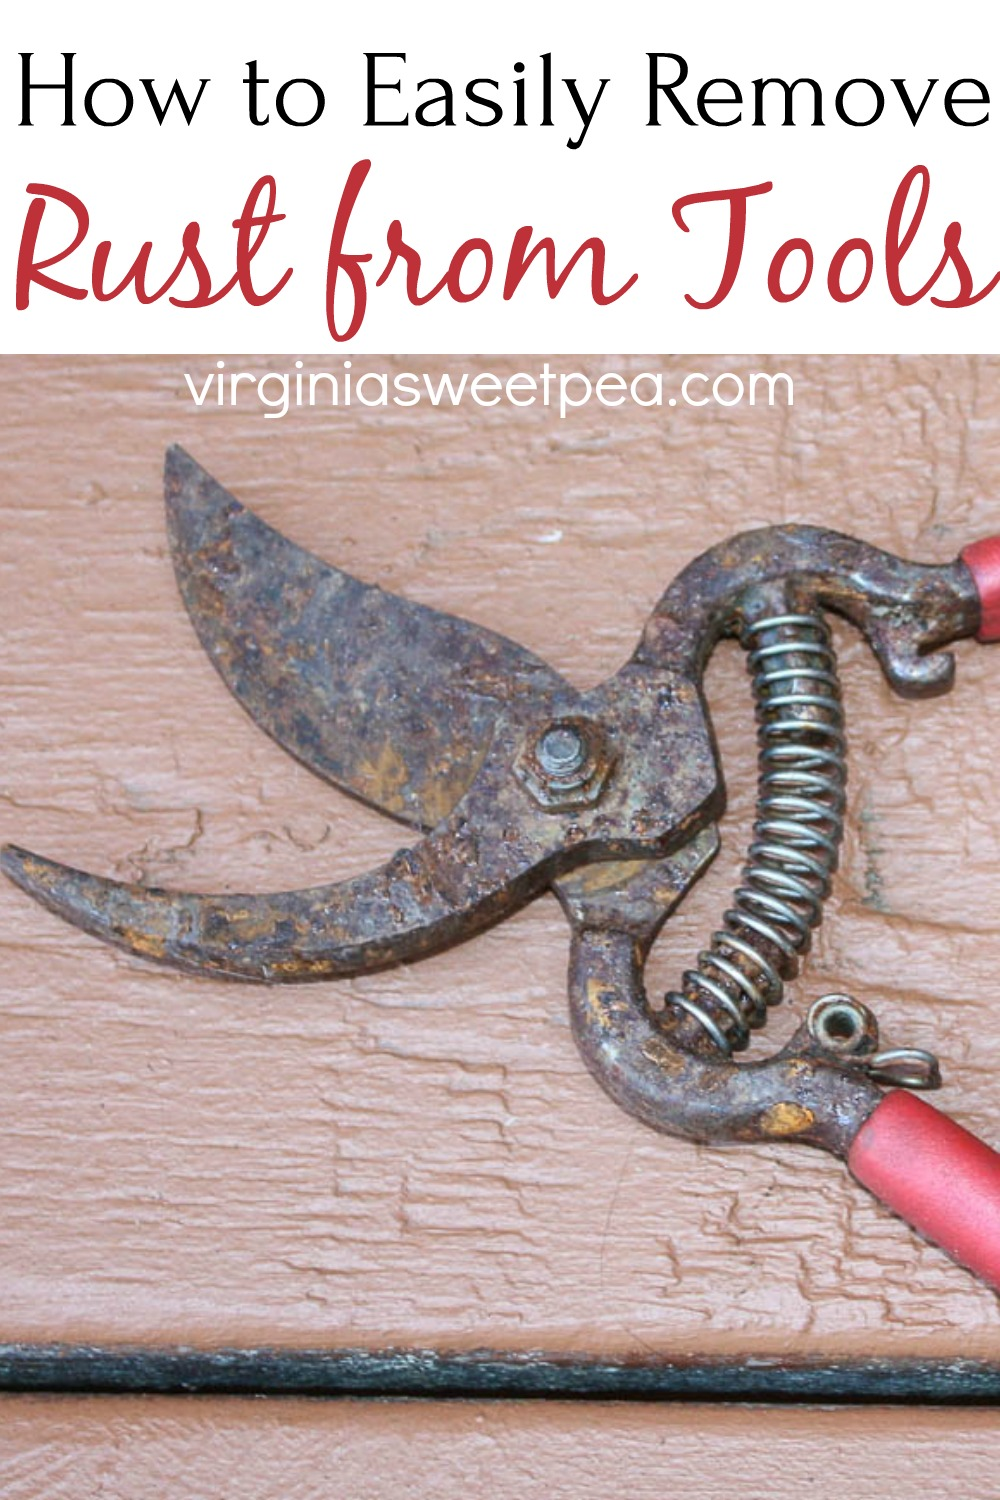 How to Easily Remove Rust from Tools - Make your rusty tool look like new by removing rust following this step-by-step tutorial. via @spaula